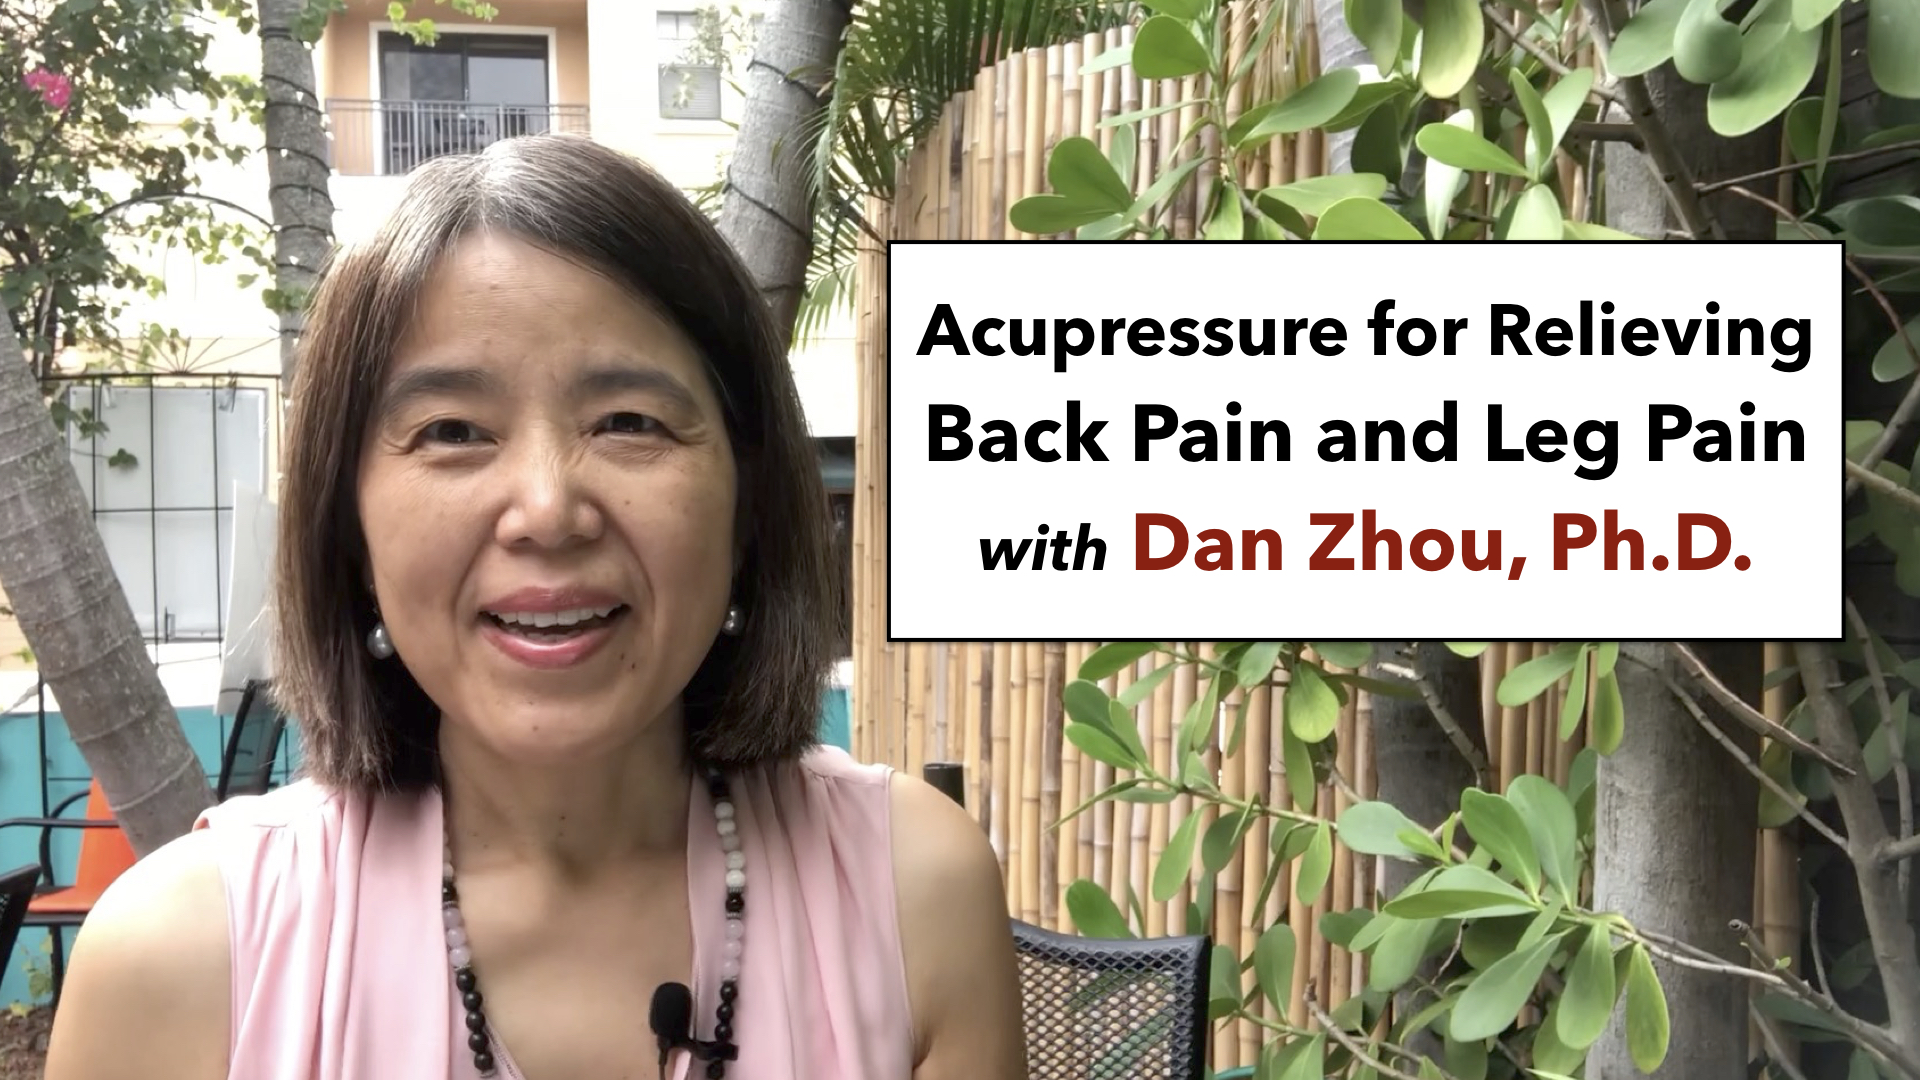 How to relieve back pain with acupressure